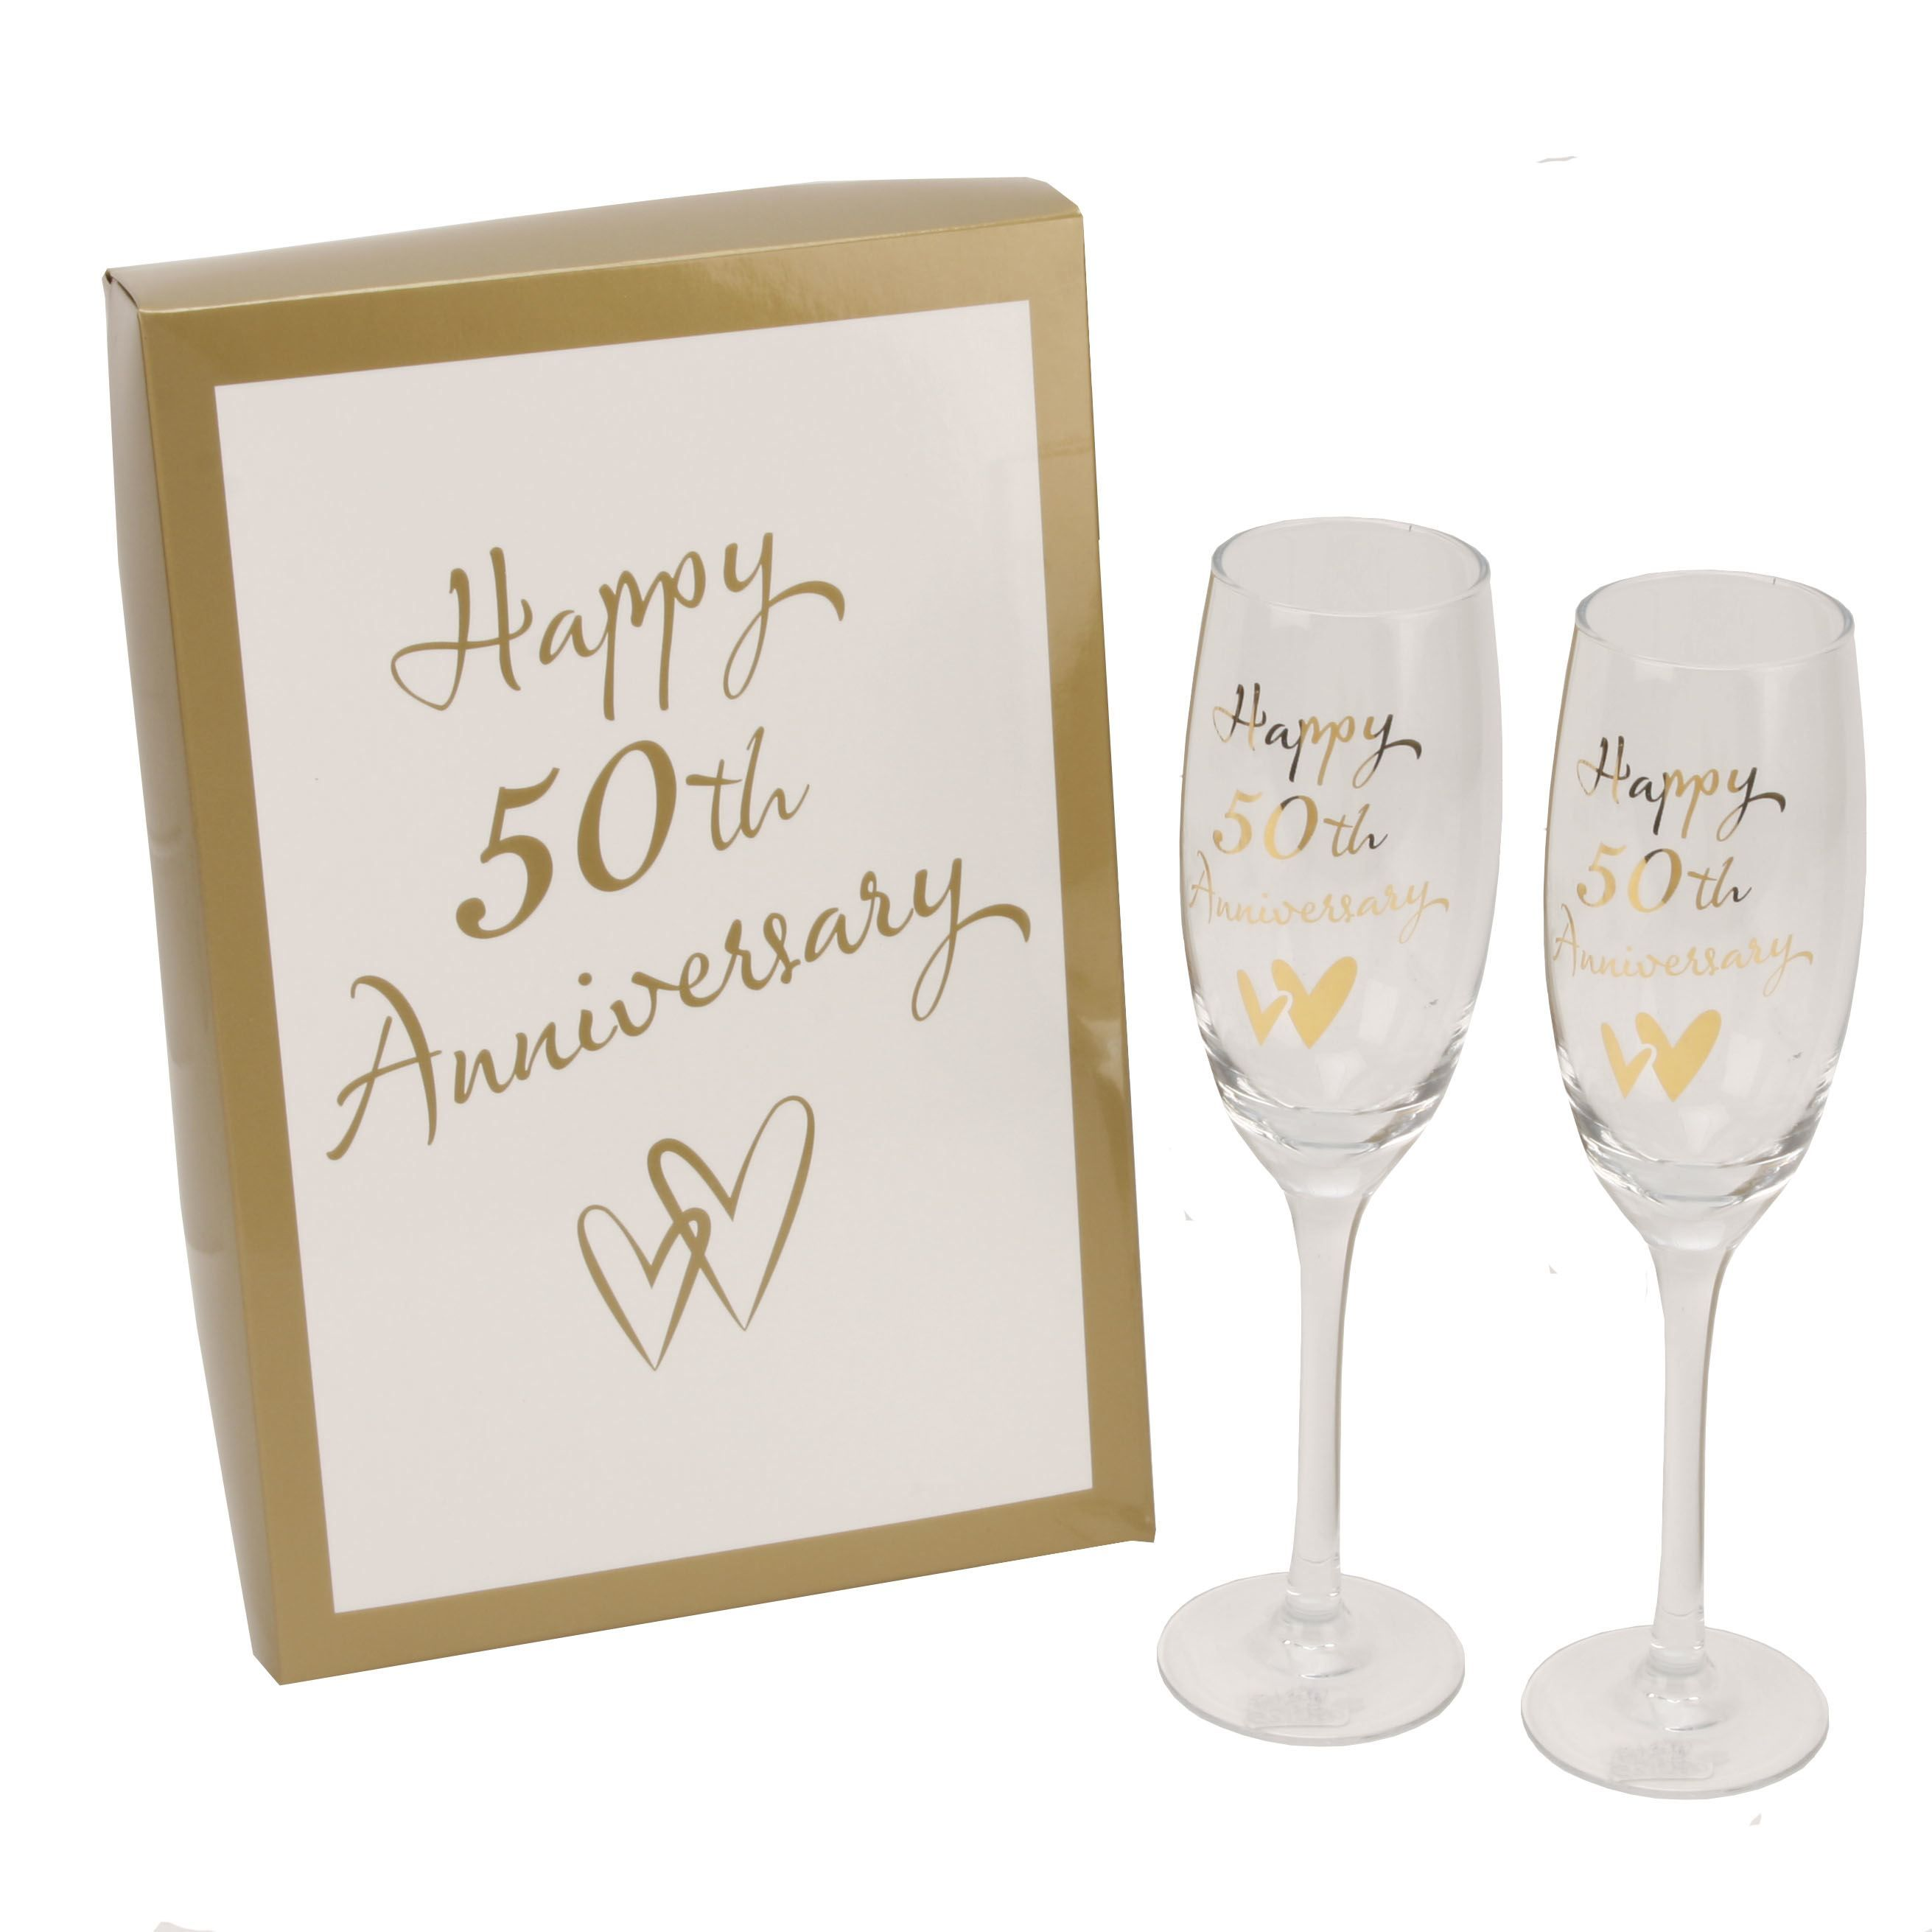 50th-anniversary-gift-ideas-50th-anniversary-gift-ideas-for-my ...